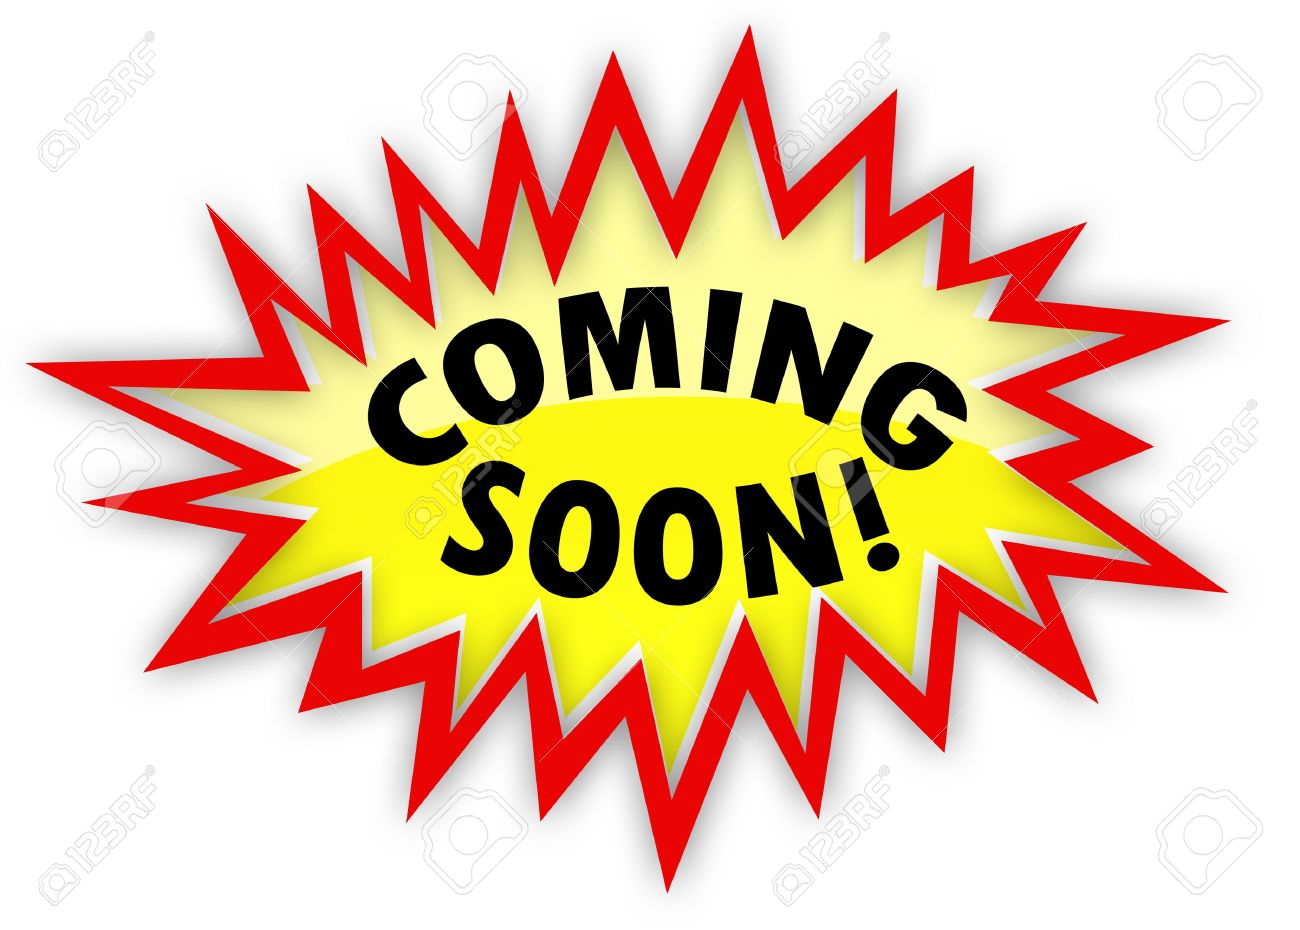 Coming Soon Clipart 9.